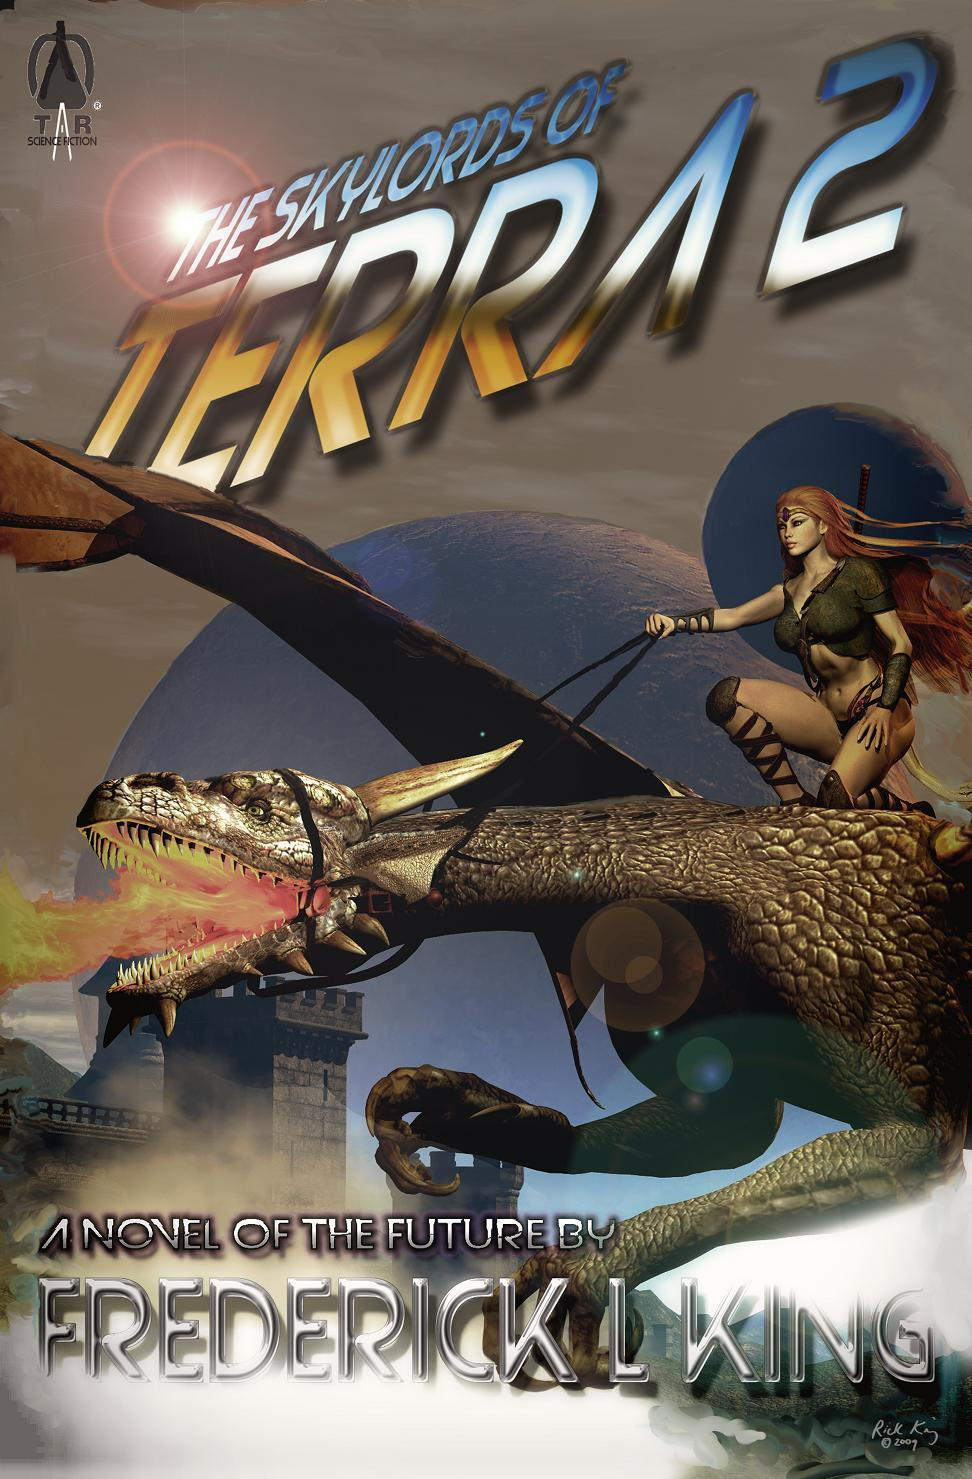 skylords of terra 2